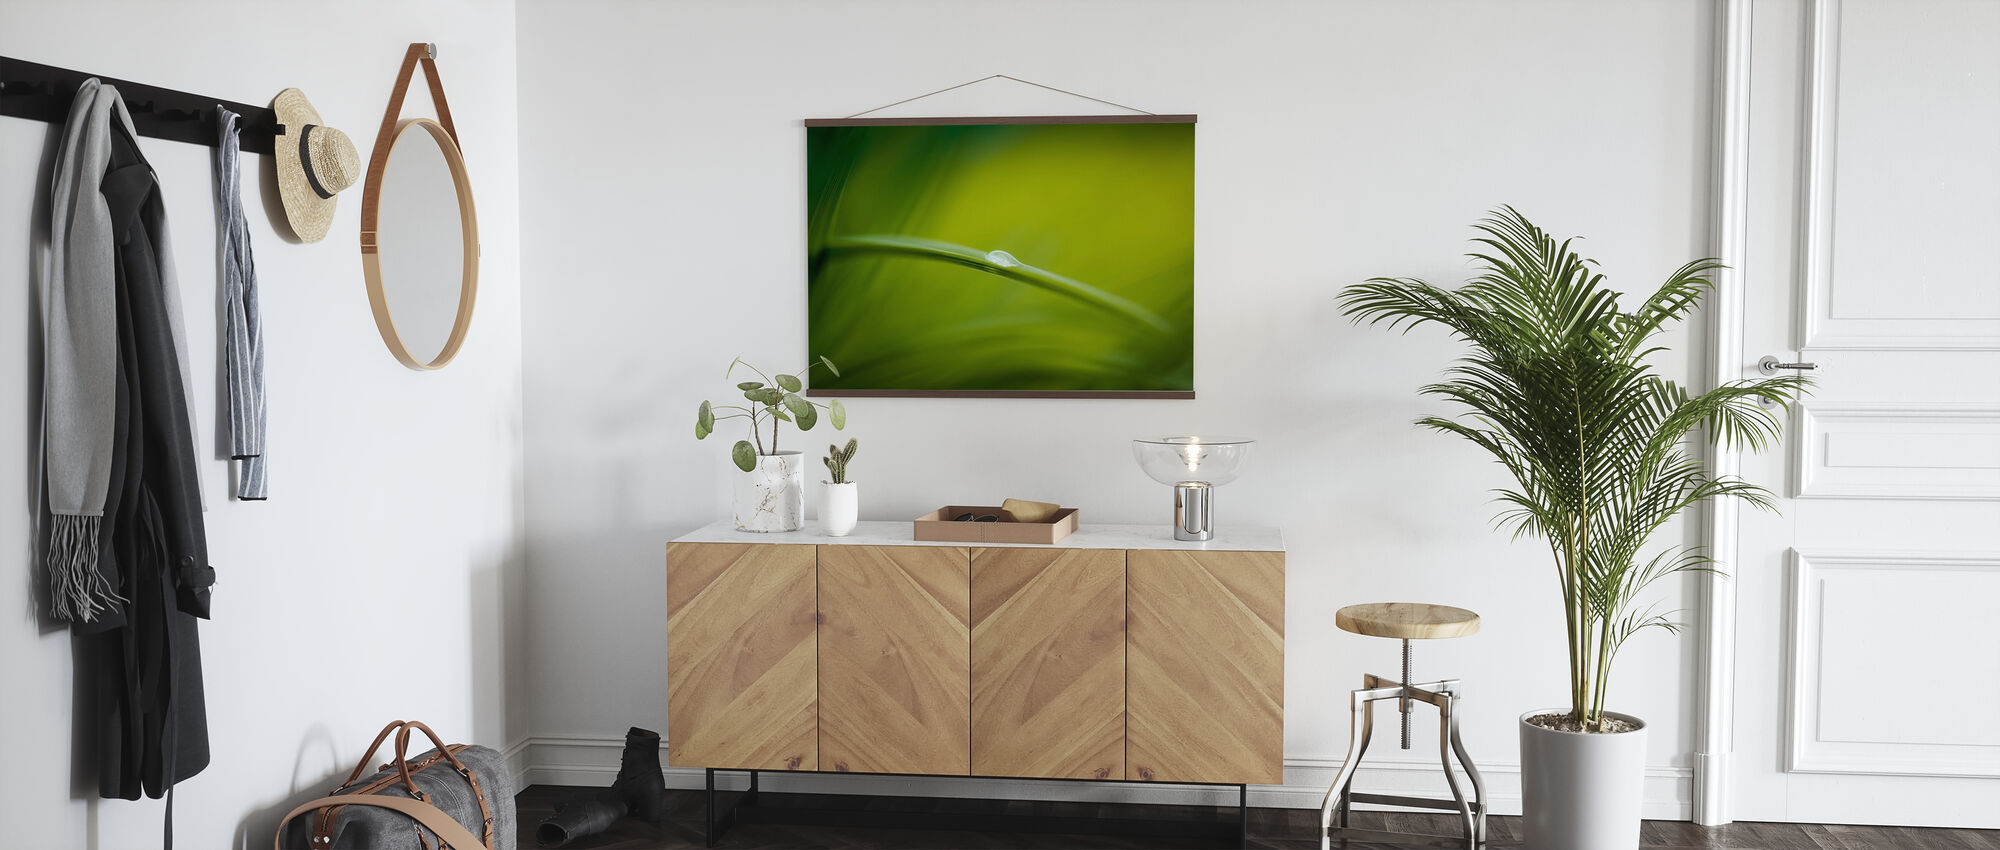 Majestic Green Nature - Poster - Hallway